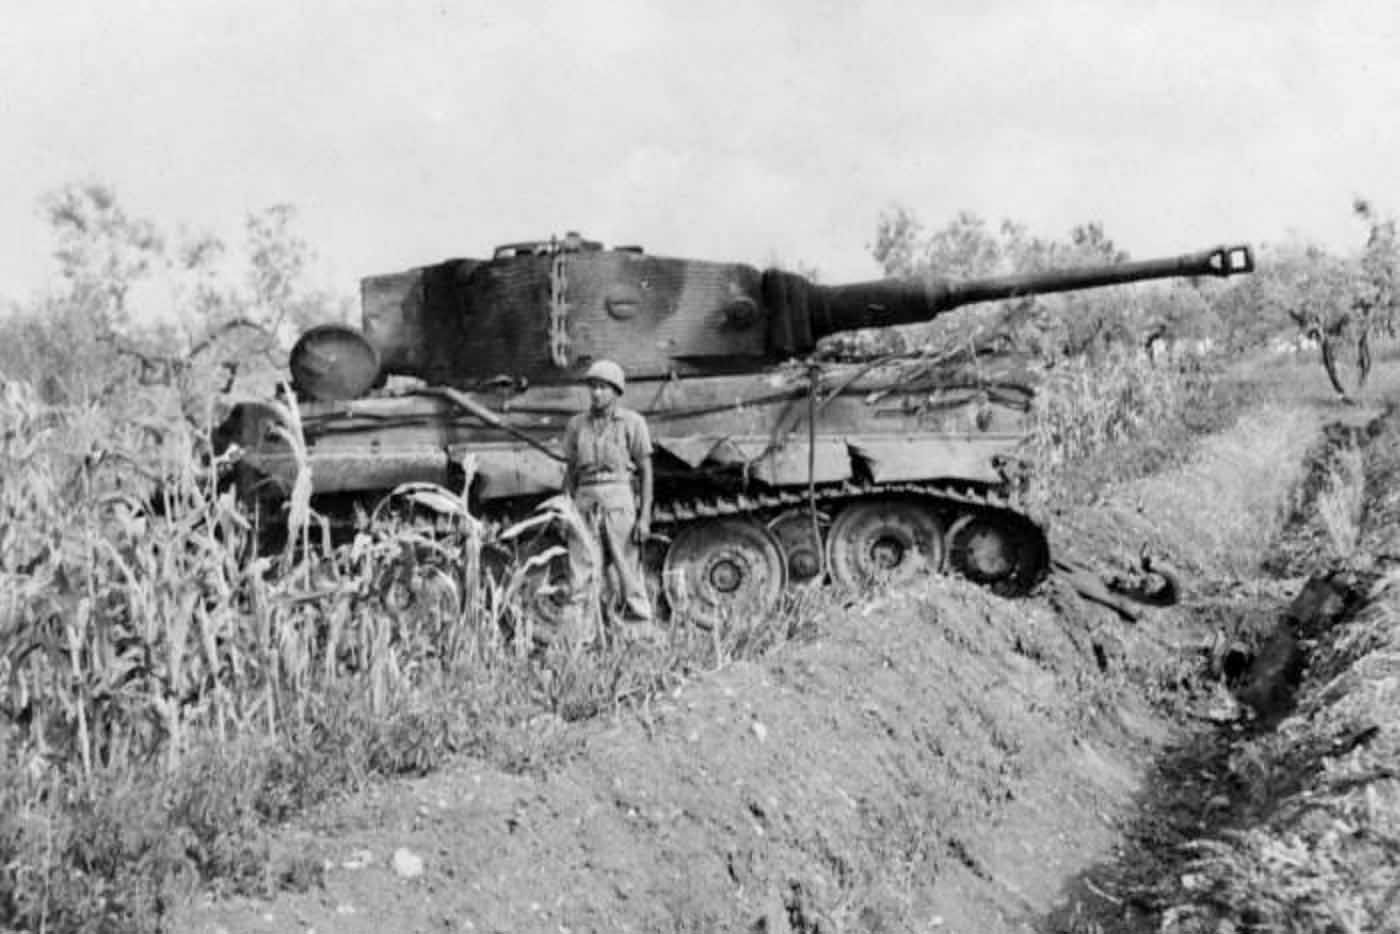 tiger tank with steel whells of the schwere panzer abteilung 508 villa bonnaza italy